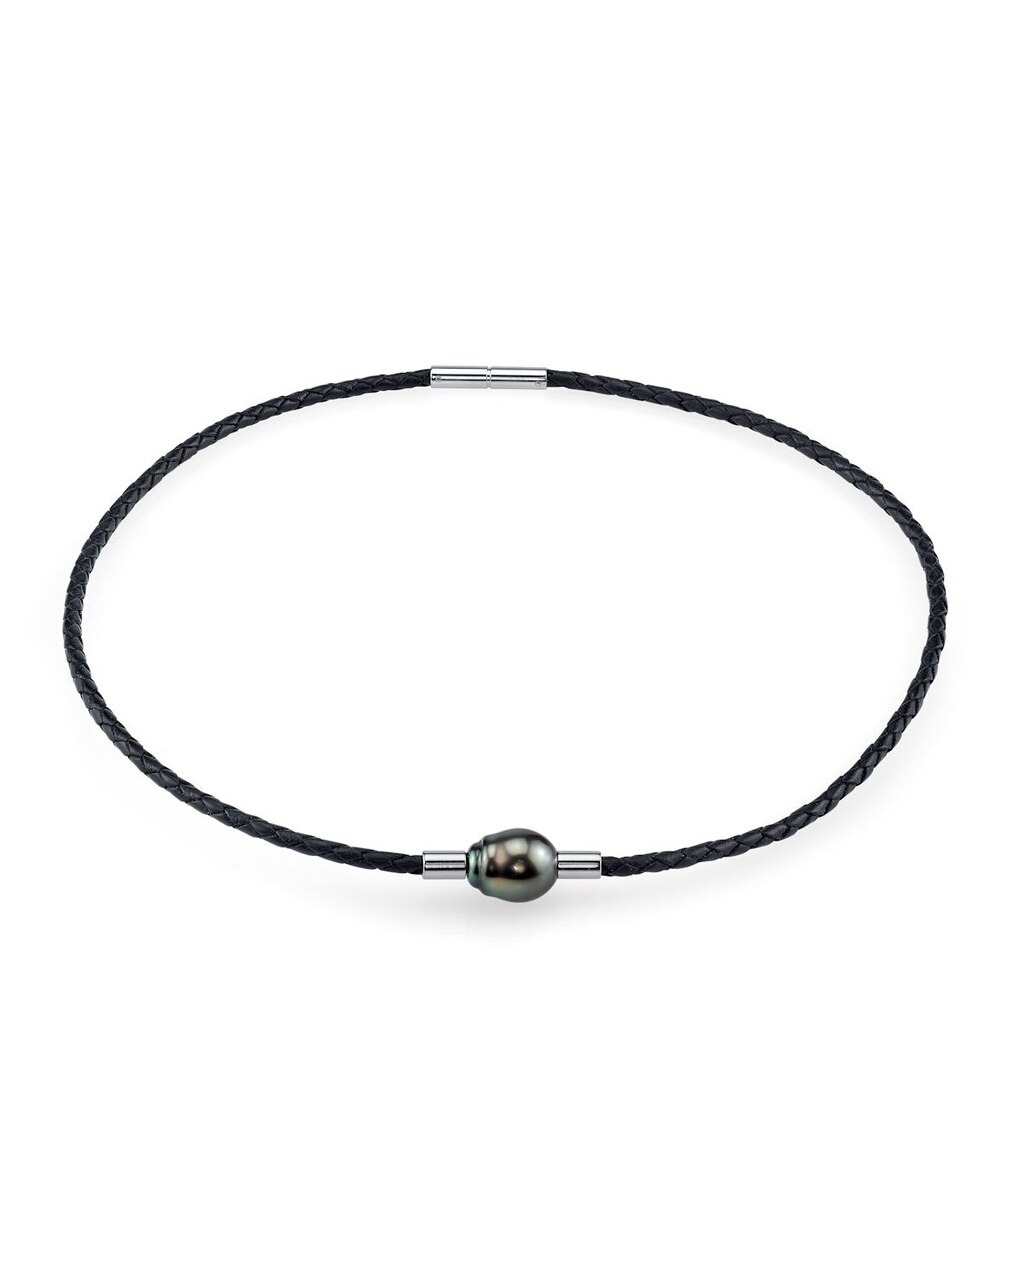 This beautiful necklace features a near-round shaped Tahitian South Sea pearl